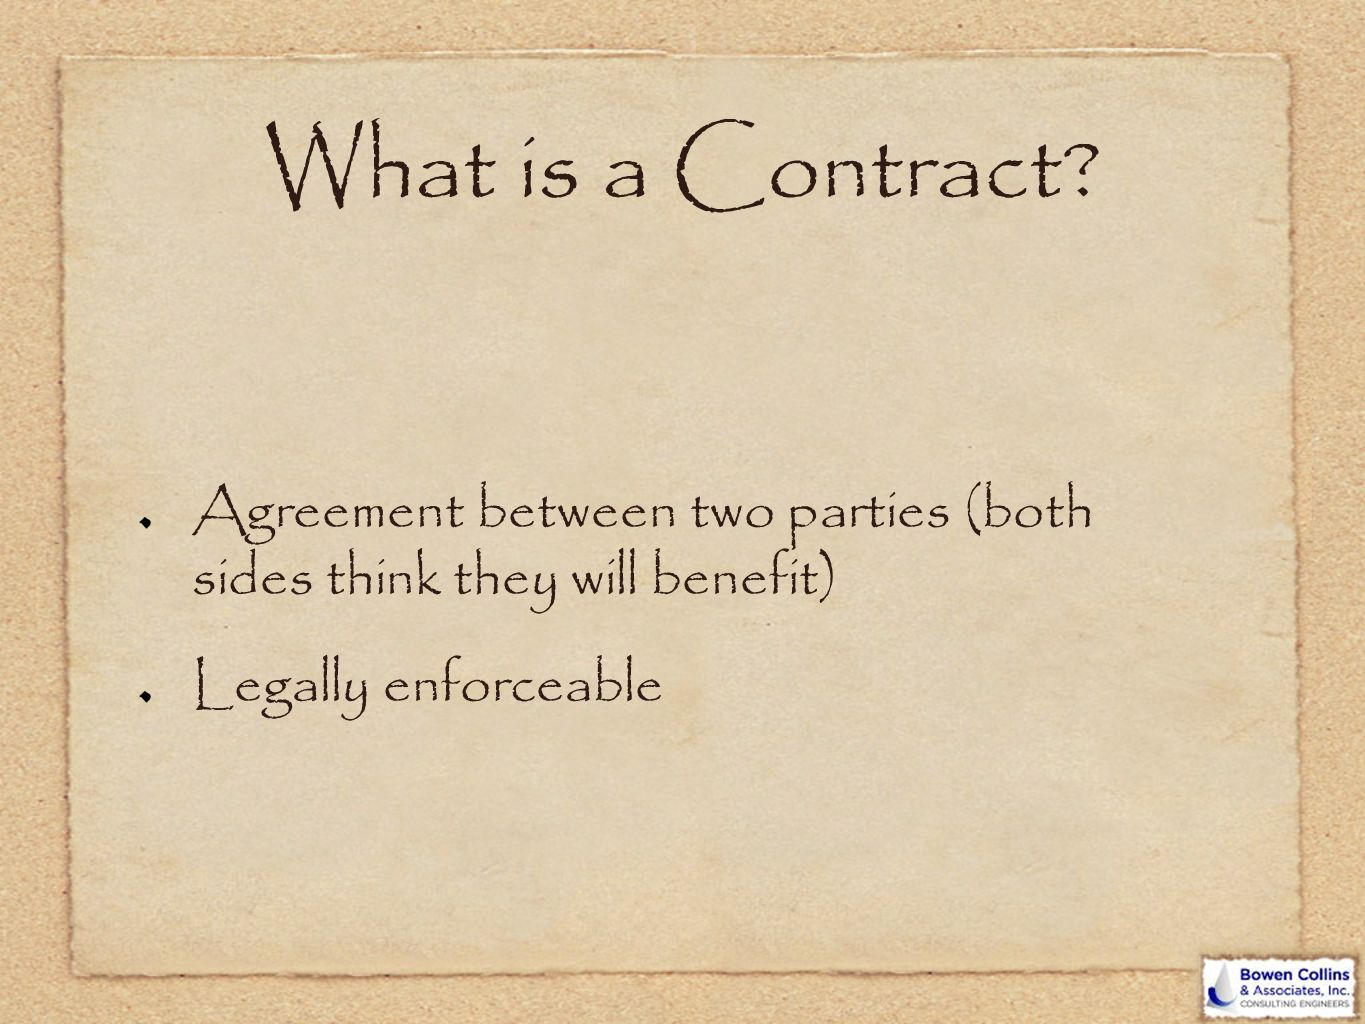 What is a Contract Agreement between two parties (both sides think they will benefit) Legally enforceable.